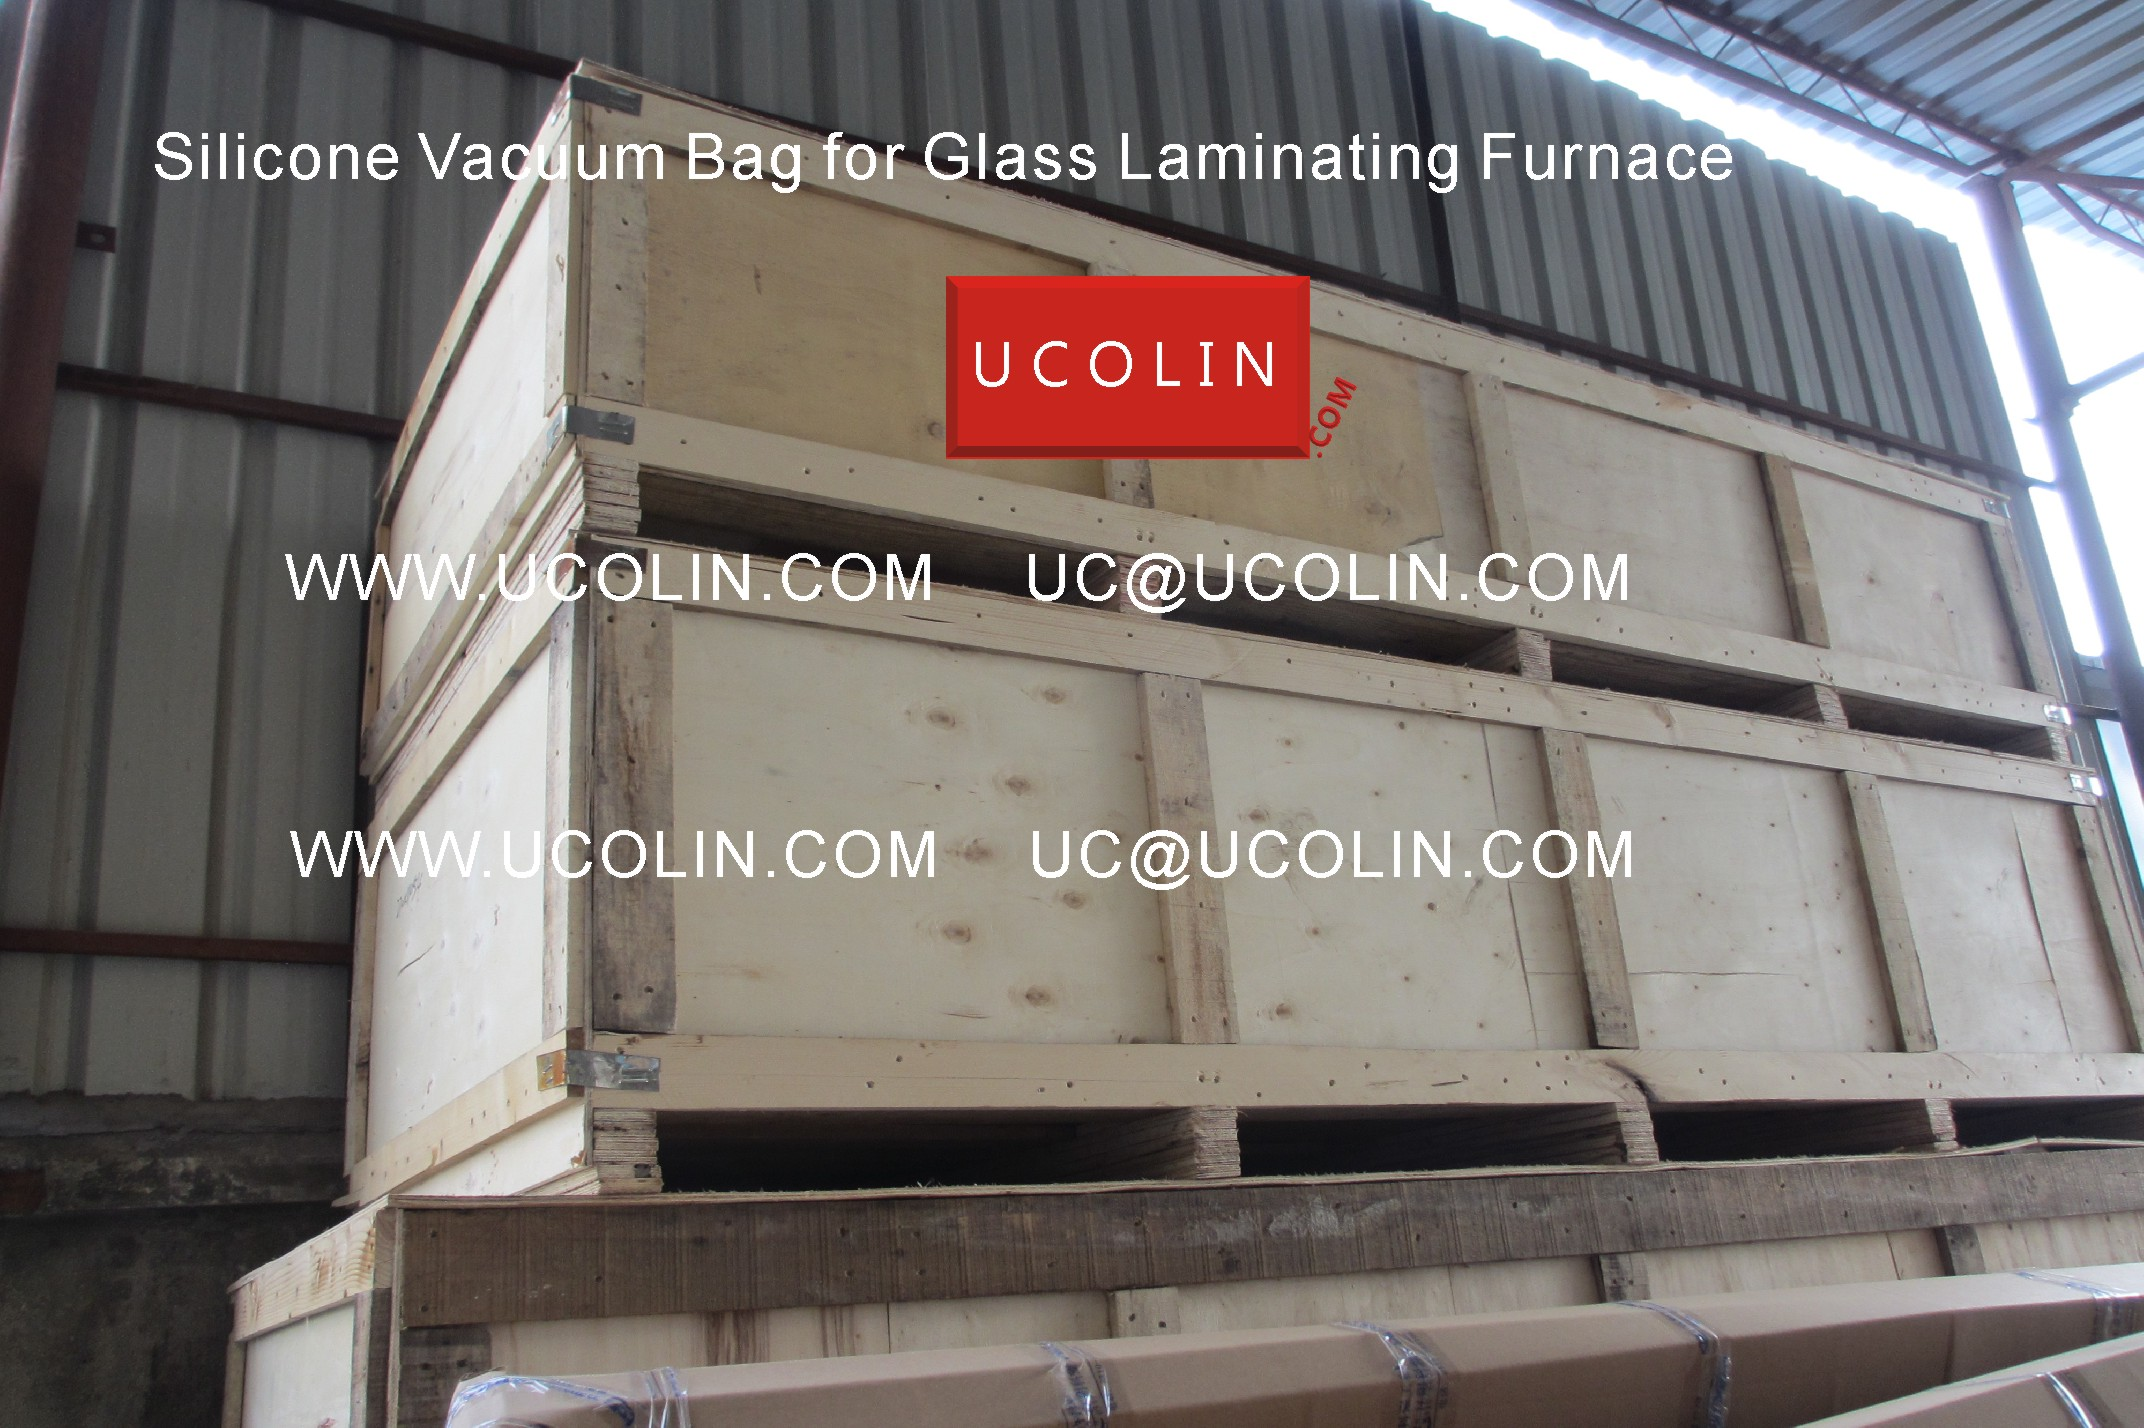 04 Producing of Silicone Vacuum Bag for Glass Laminating Furnace